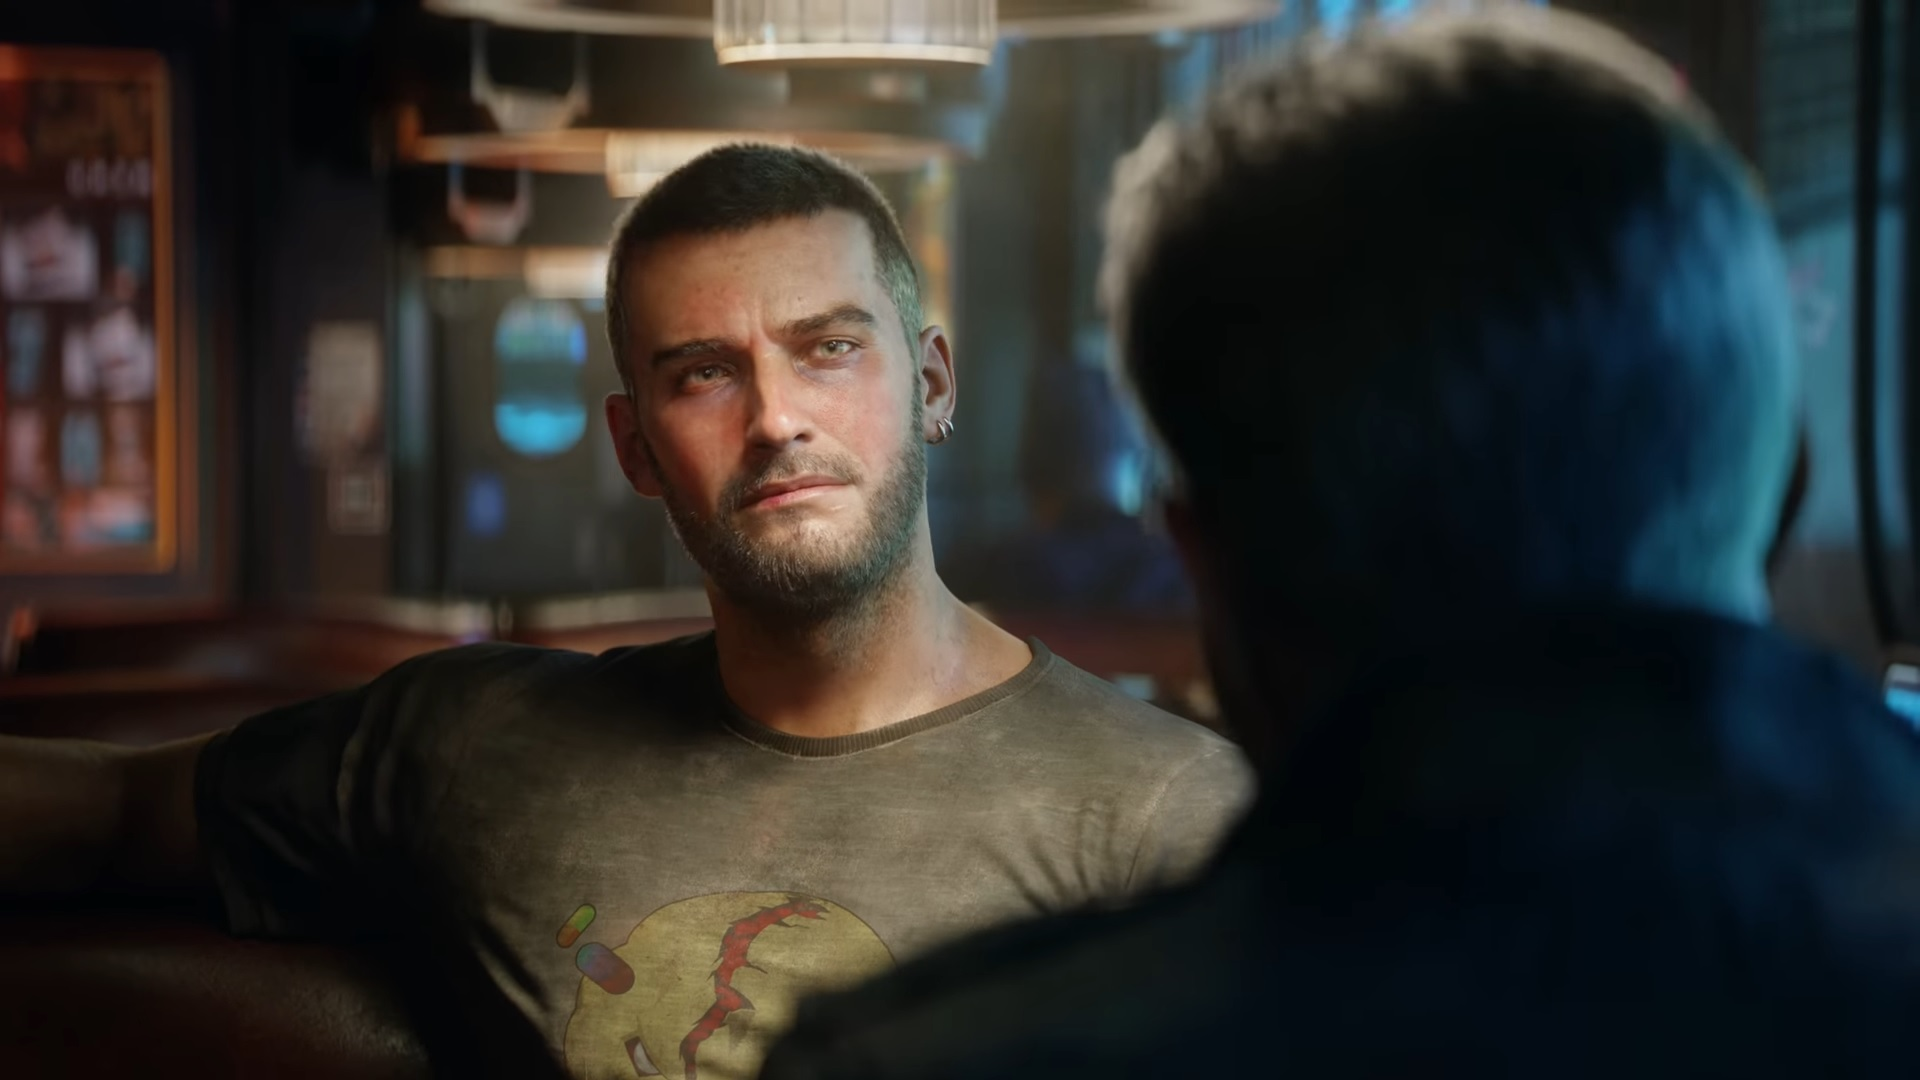 Cyberpunk 2077 Dlc And Expansion Announcements Gets Delayed Sirus Gaming